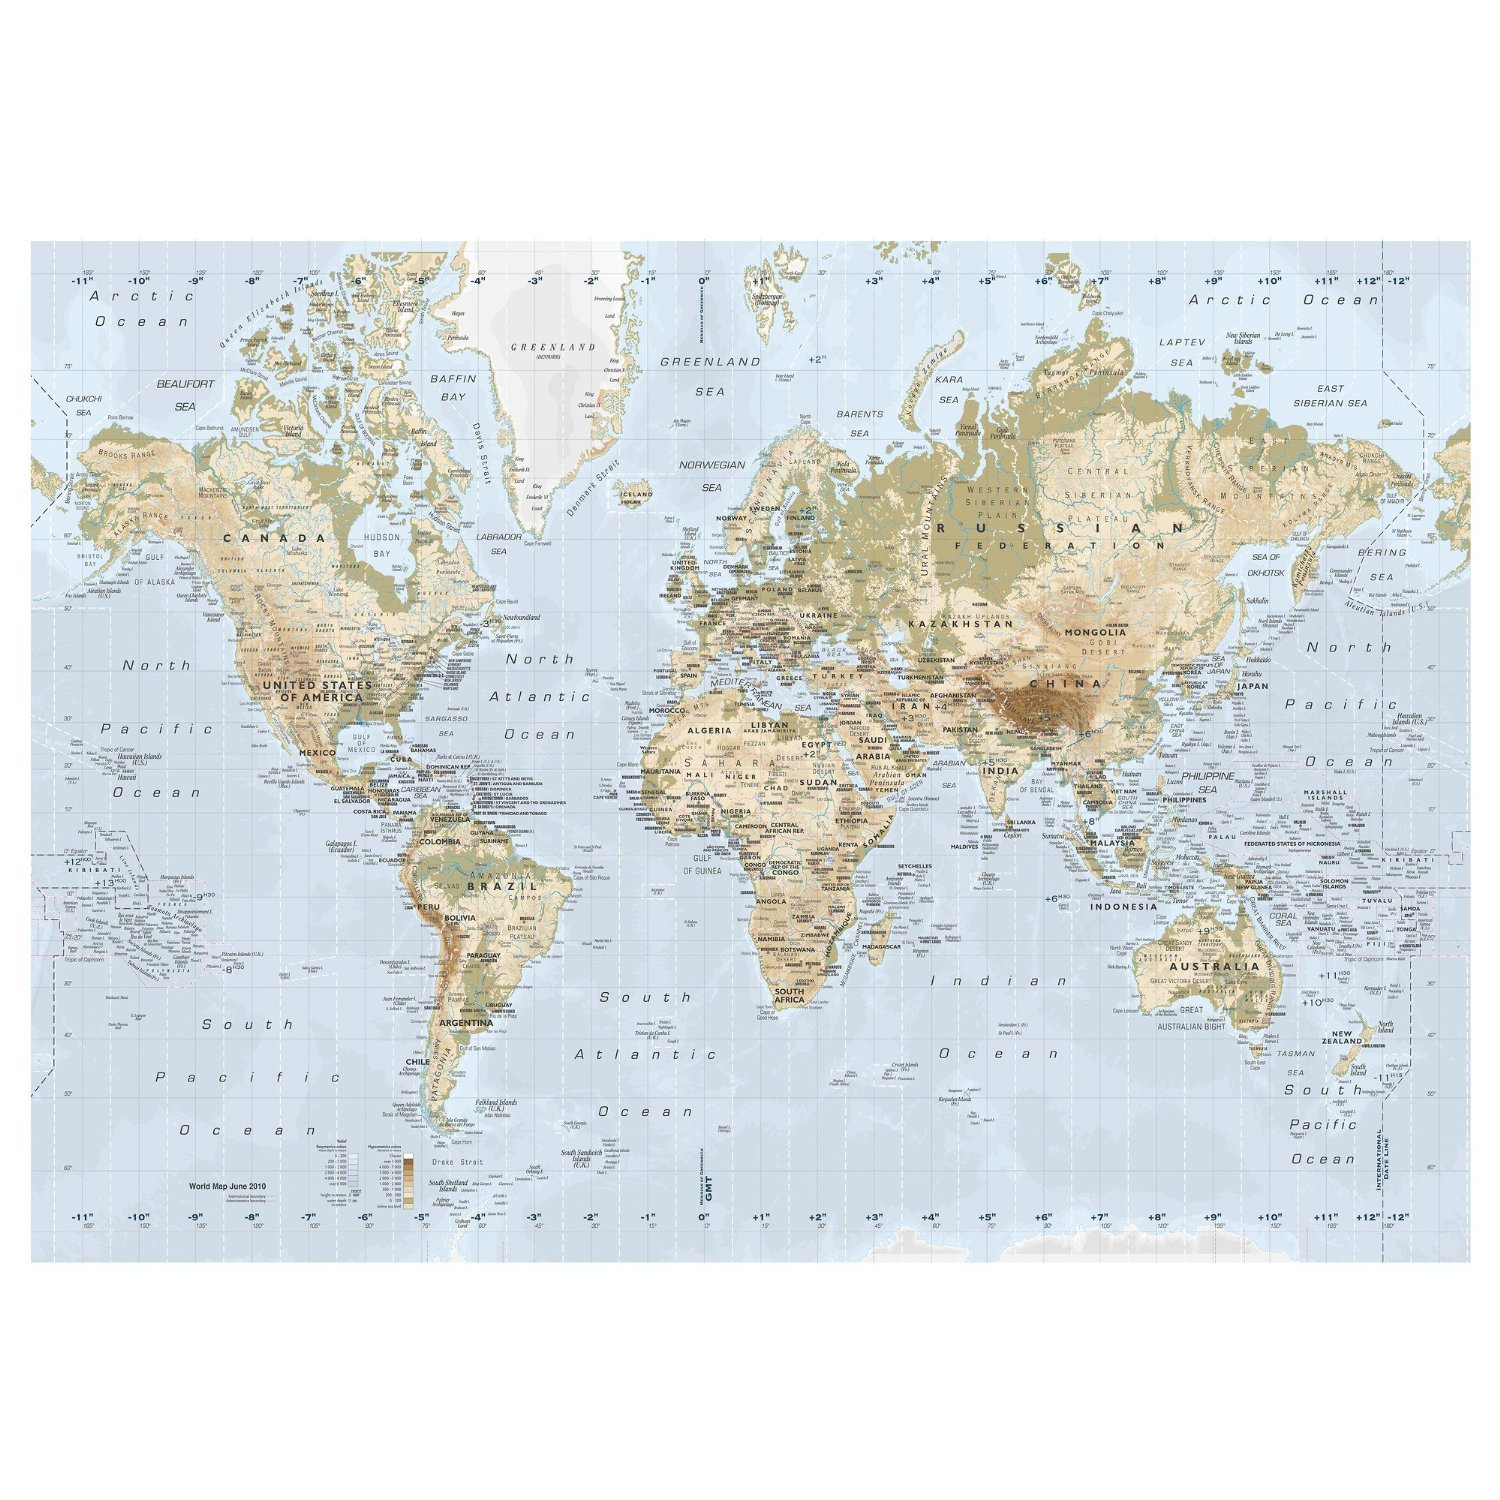 Amazon new ikea premiar world map picture with framecanvas amazon new ikea premiar world map picture with framecanvas large 55 x 78 inches canvas panels posters prints gumiabroncs Gallery